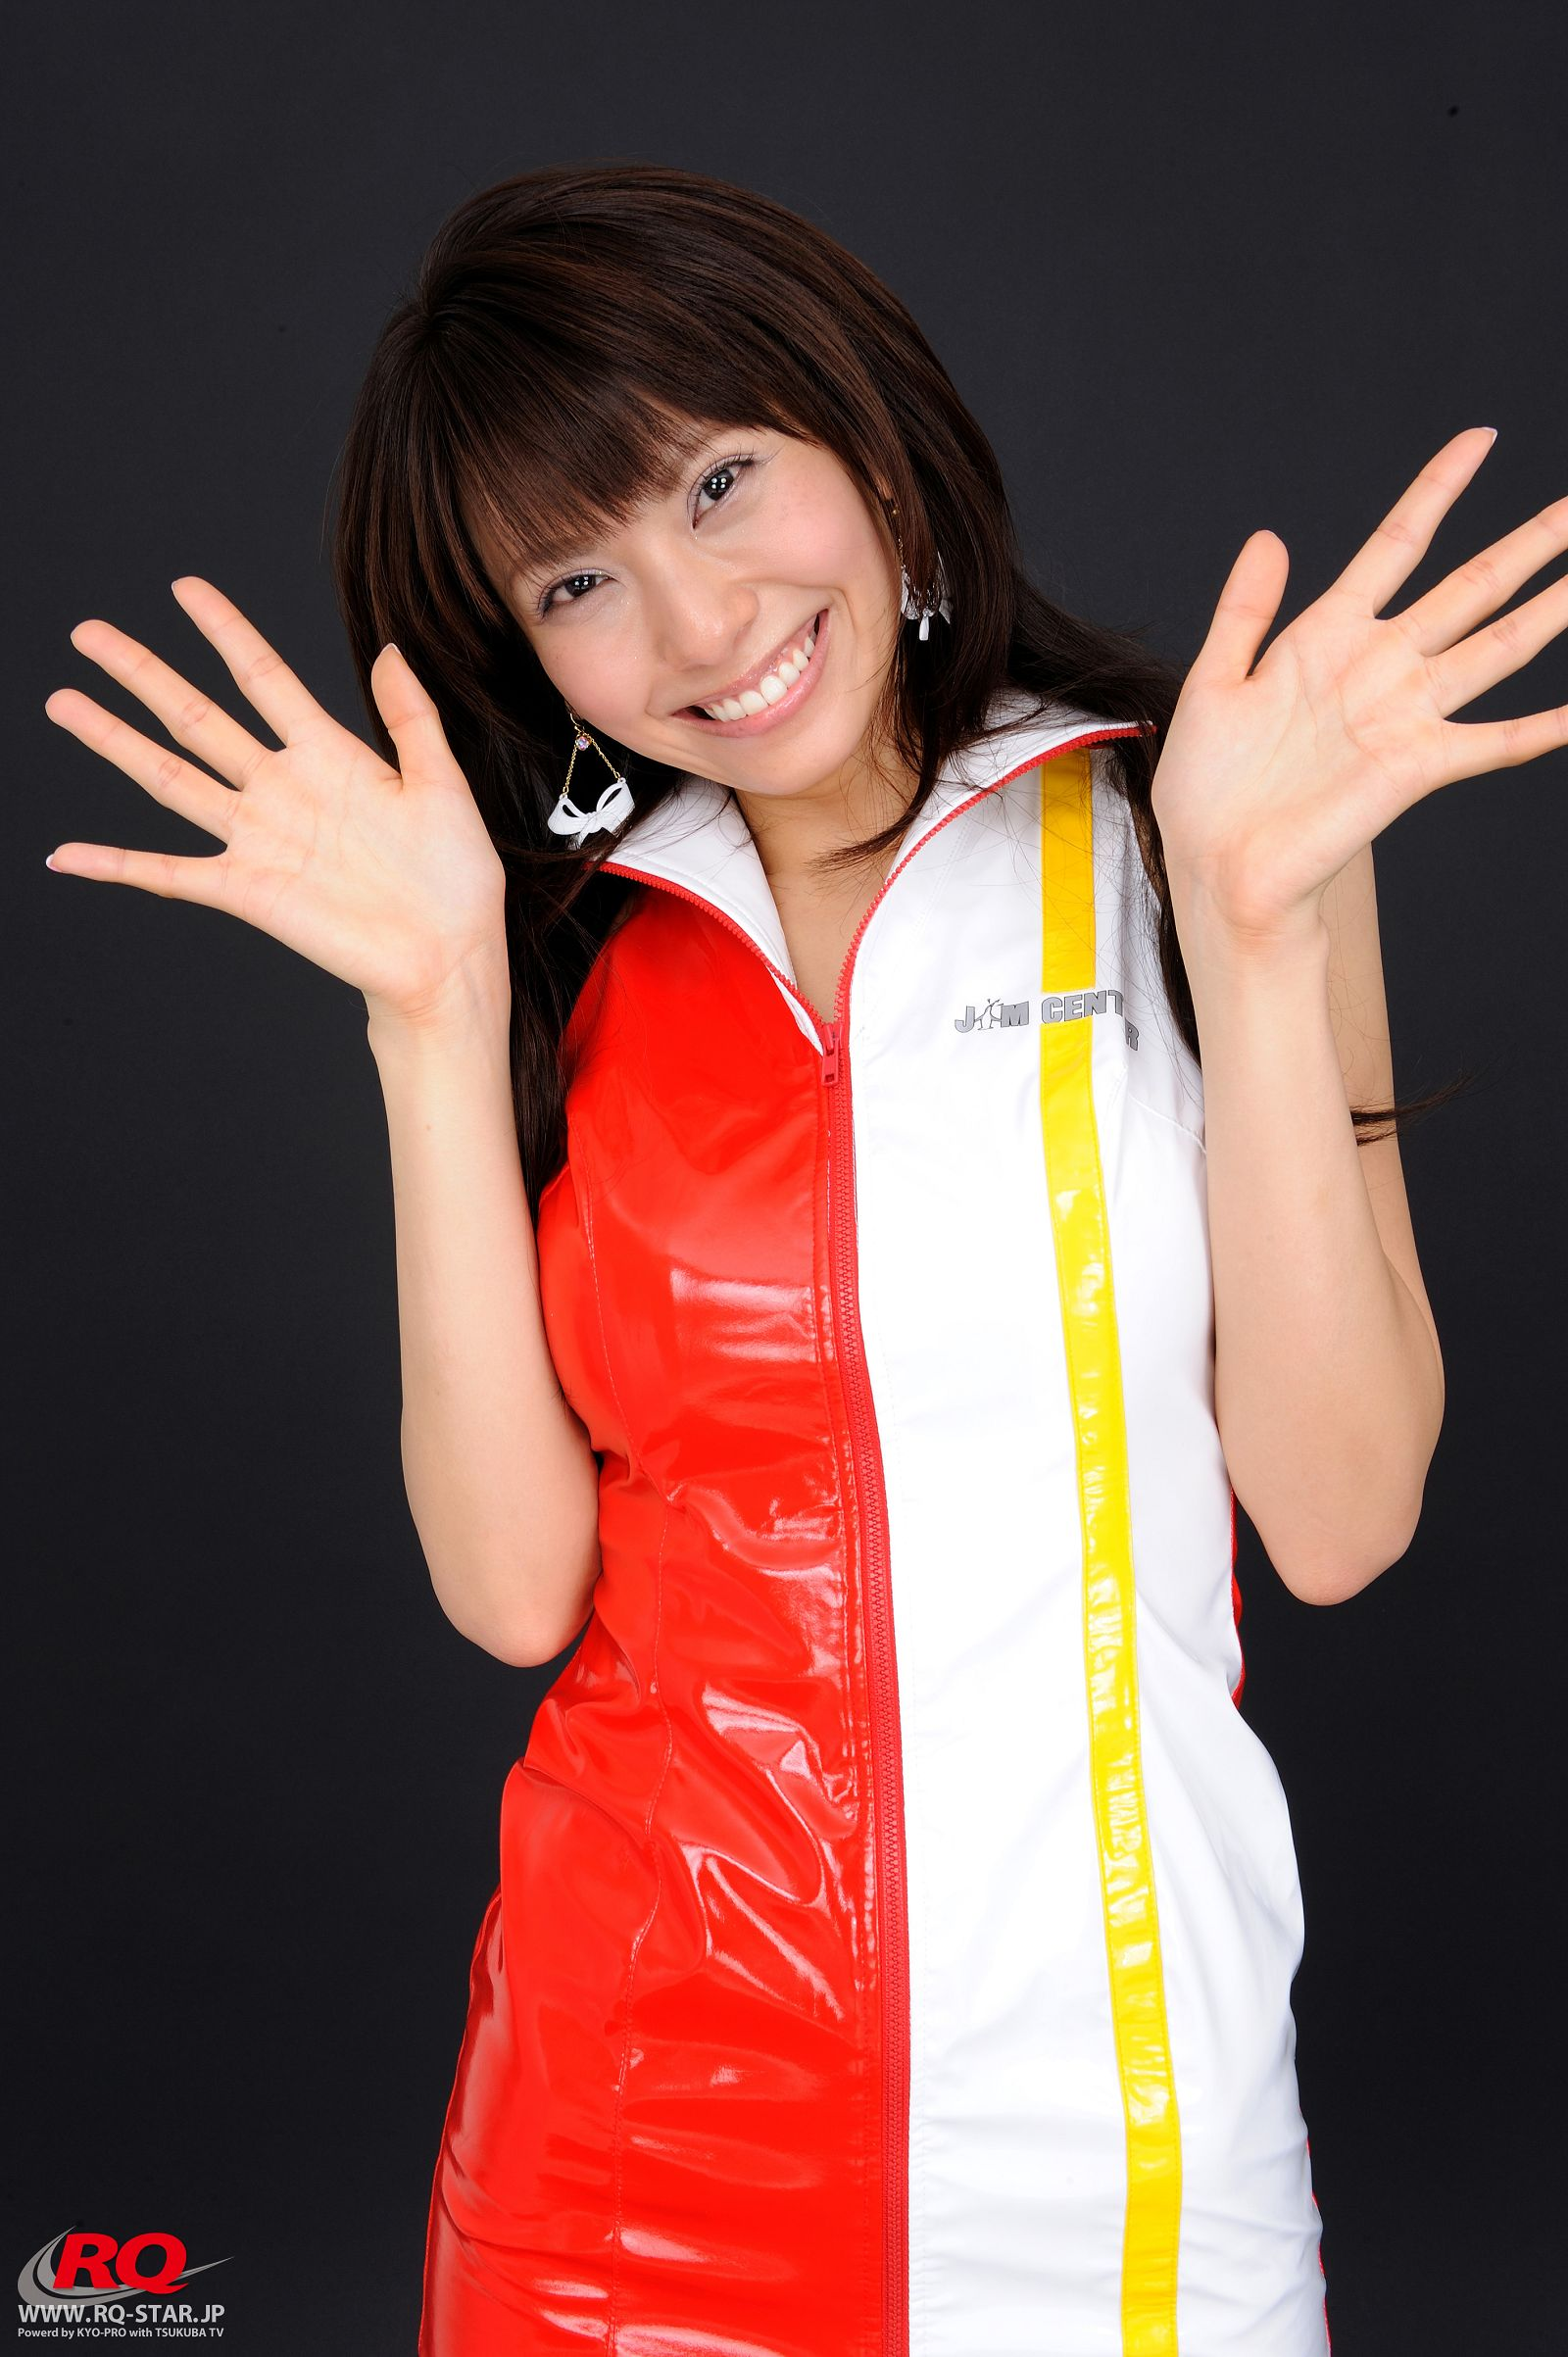 [RQ STAR美女] NO.01066 Honoka Asada 浅田ほのか Race Queen[100P] RQ STAR 第3张